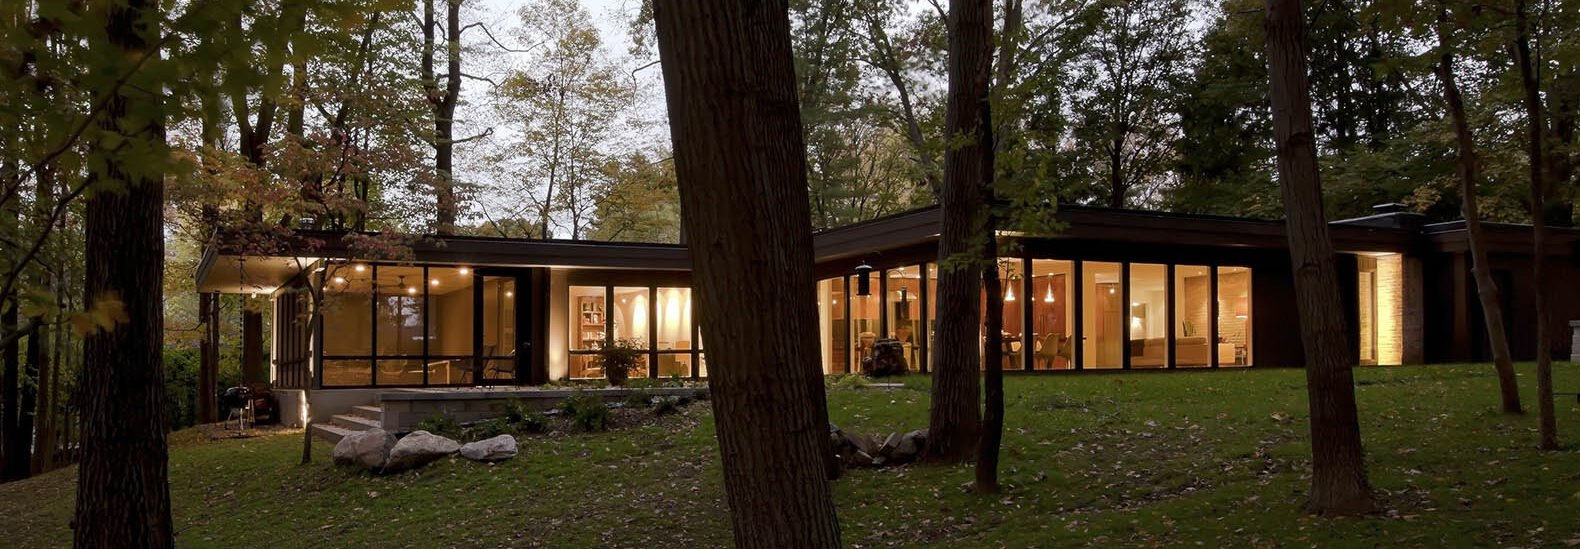 , Transformed midcentury modern home focuses on sustainability, The Circular Economy